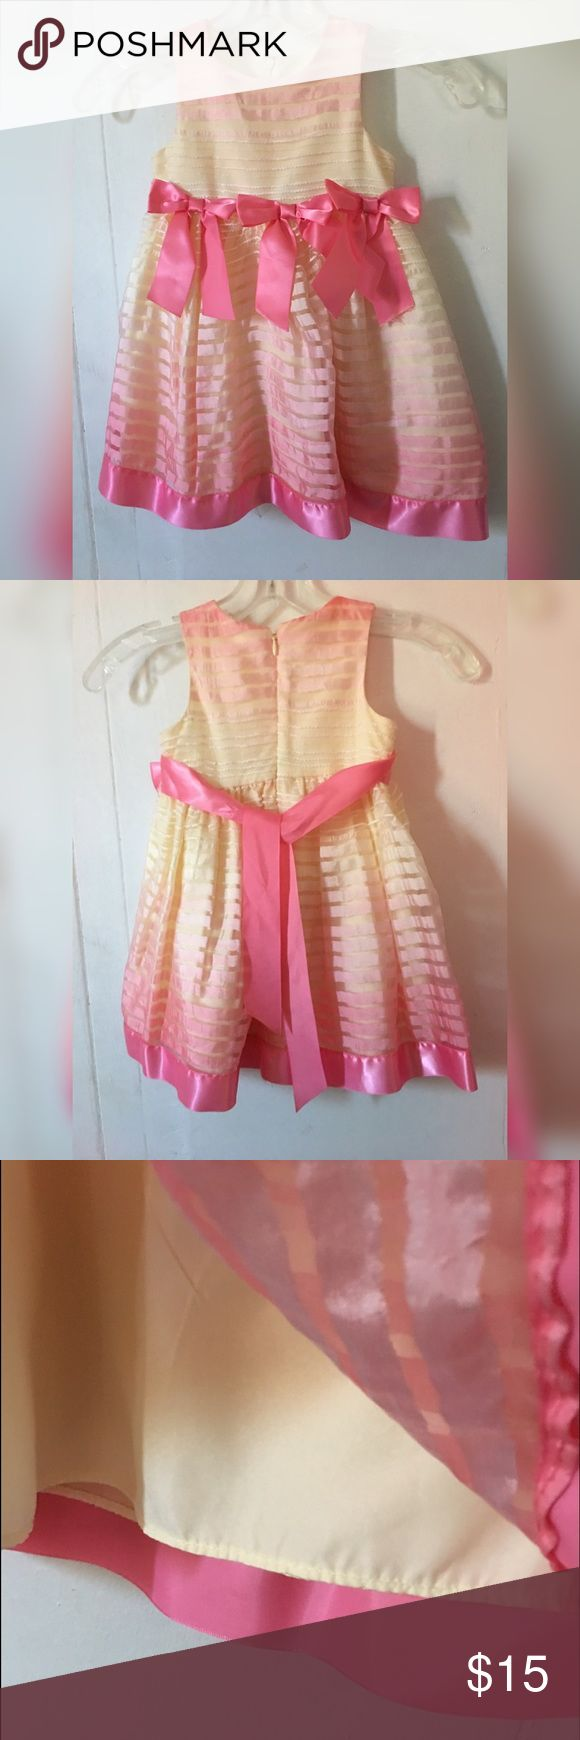 Easter Dress Girls 24M with Bows by Bonnie Baby. 17 Best ideas about Without Dress Girls on Pinterest   Icra rating